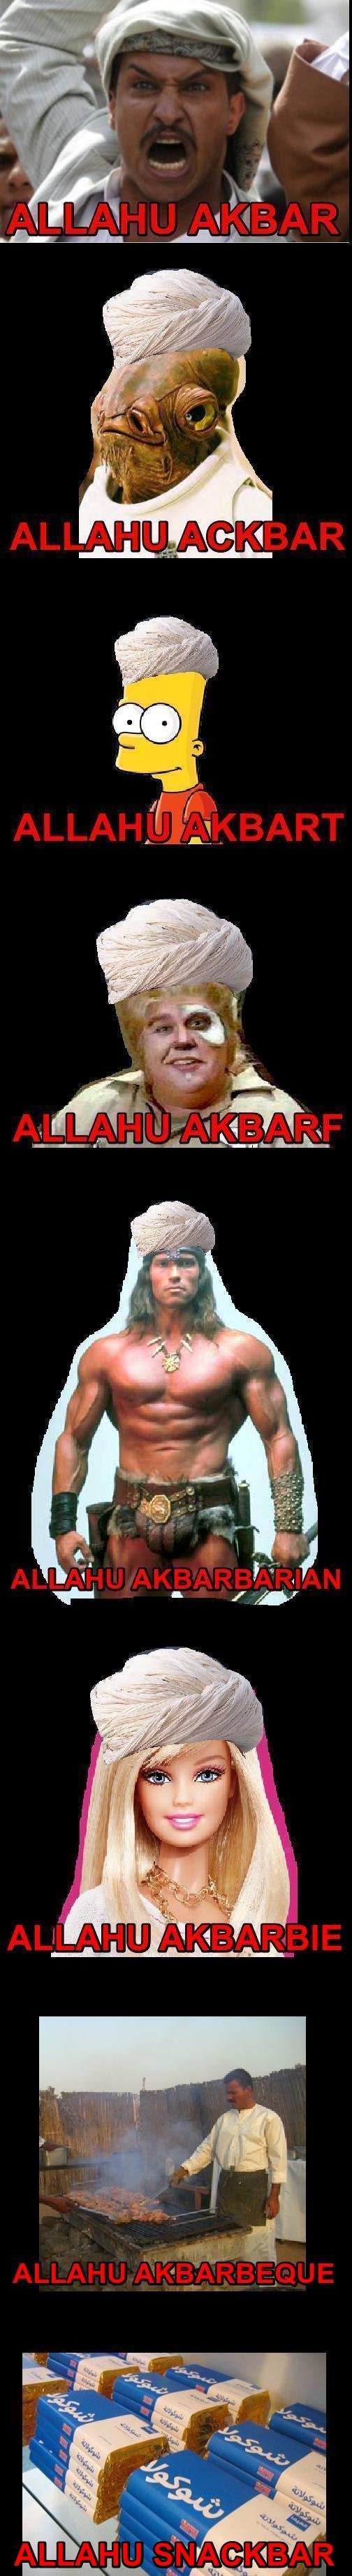 Time to with Syrianassassin. hes one mental little religious fanatic....and heres something to tease him no offence to allah....just teasing for Syrianassassin.